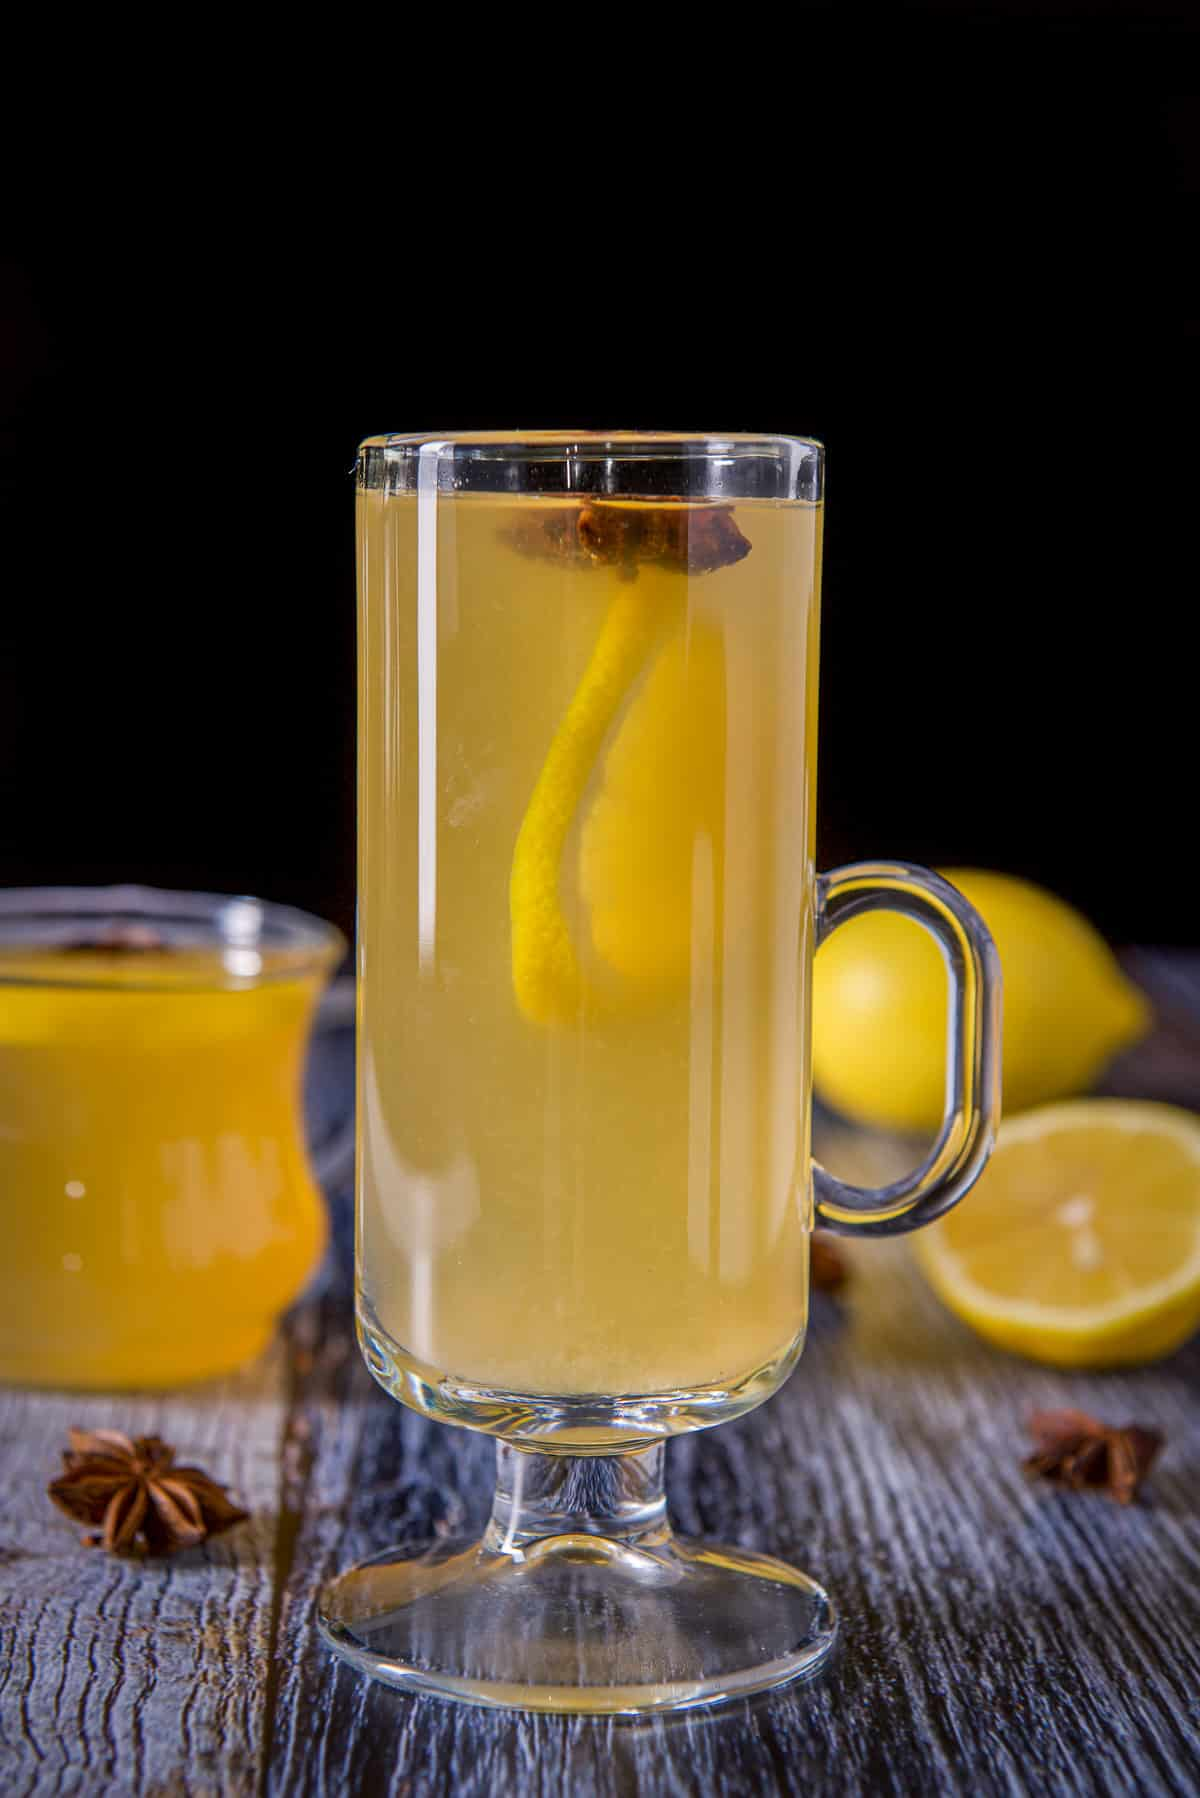 Tall glass mug in front of the shorter one, both filled with the lemon cocktail, star anise and lemon wheels for garnish